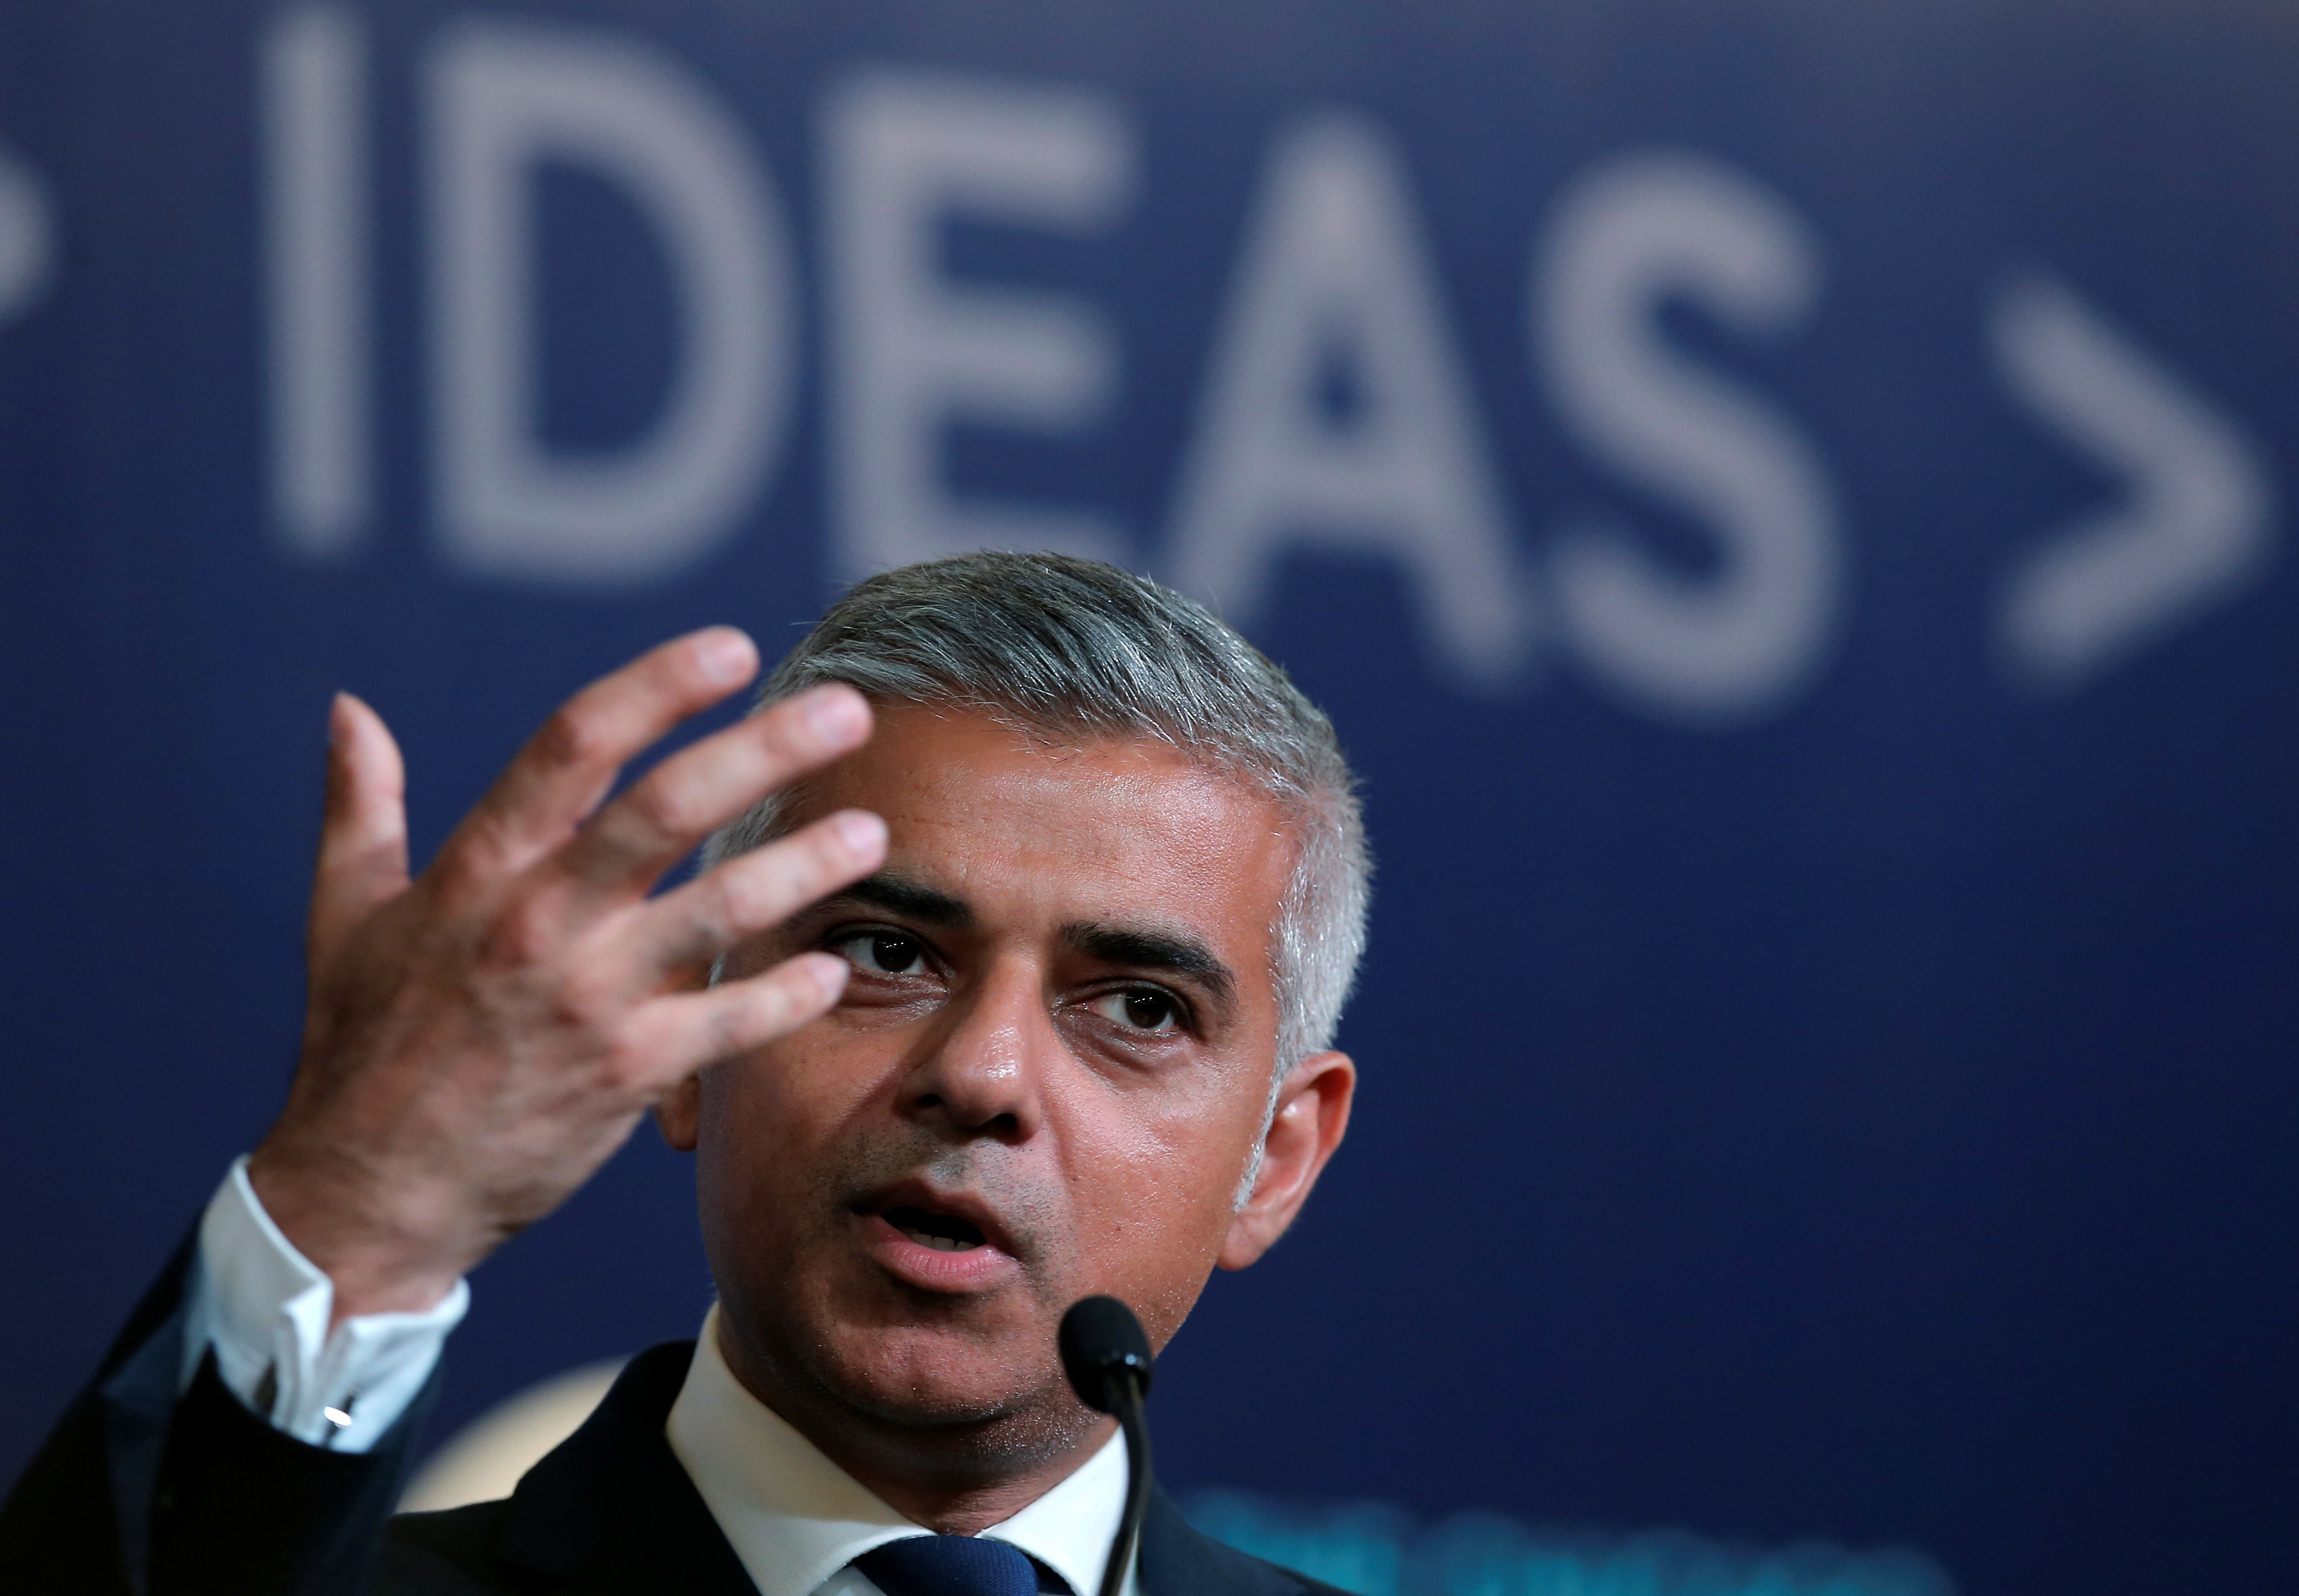 London Mayor Says U.K. Should Not 'Roll Out Red Carpet' For Donald Trump